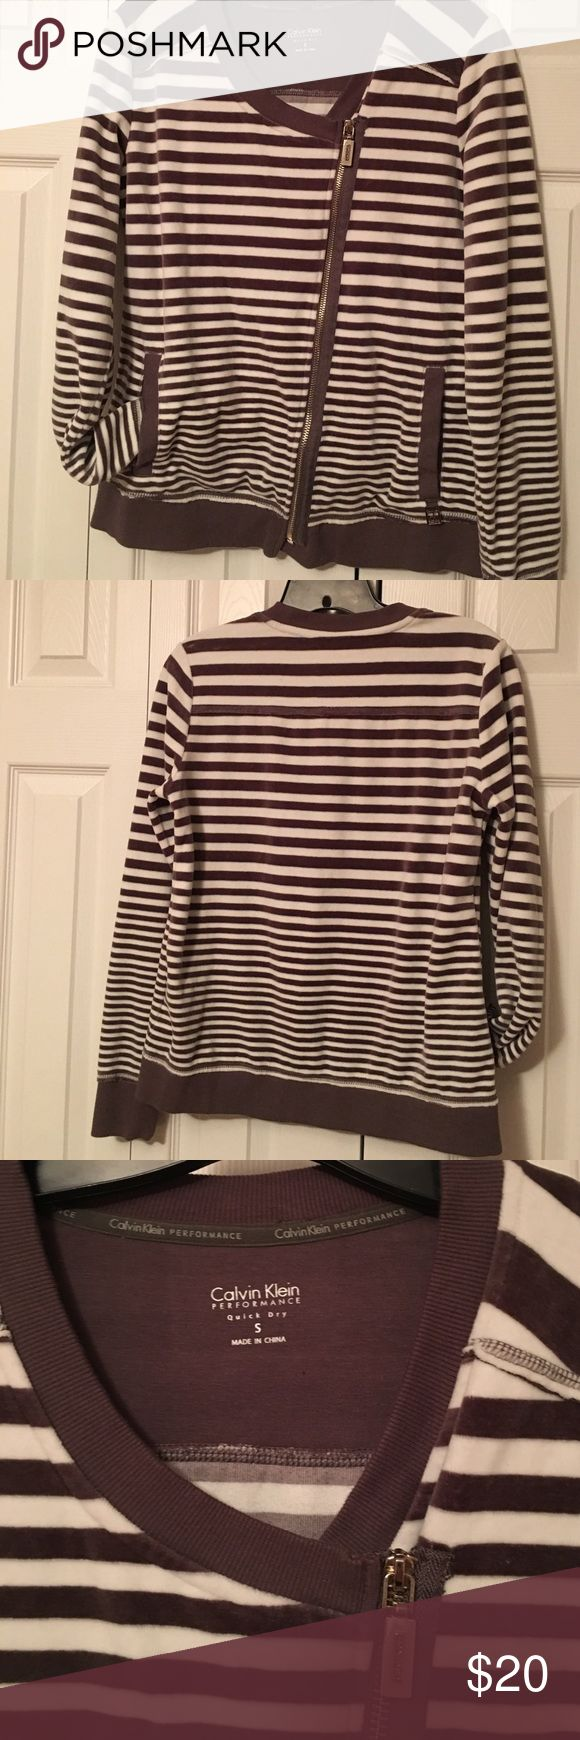 Selling this Calvin Klein Performance Striped Zip Up on Poshmark! My username is: tabatha2086. #shopmycloset #poshmark #fashion #shopping #style #forsale #Calvin Klein Collection #Jackets & Blazers